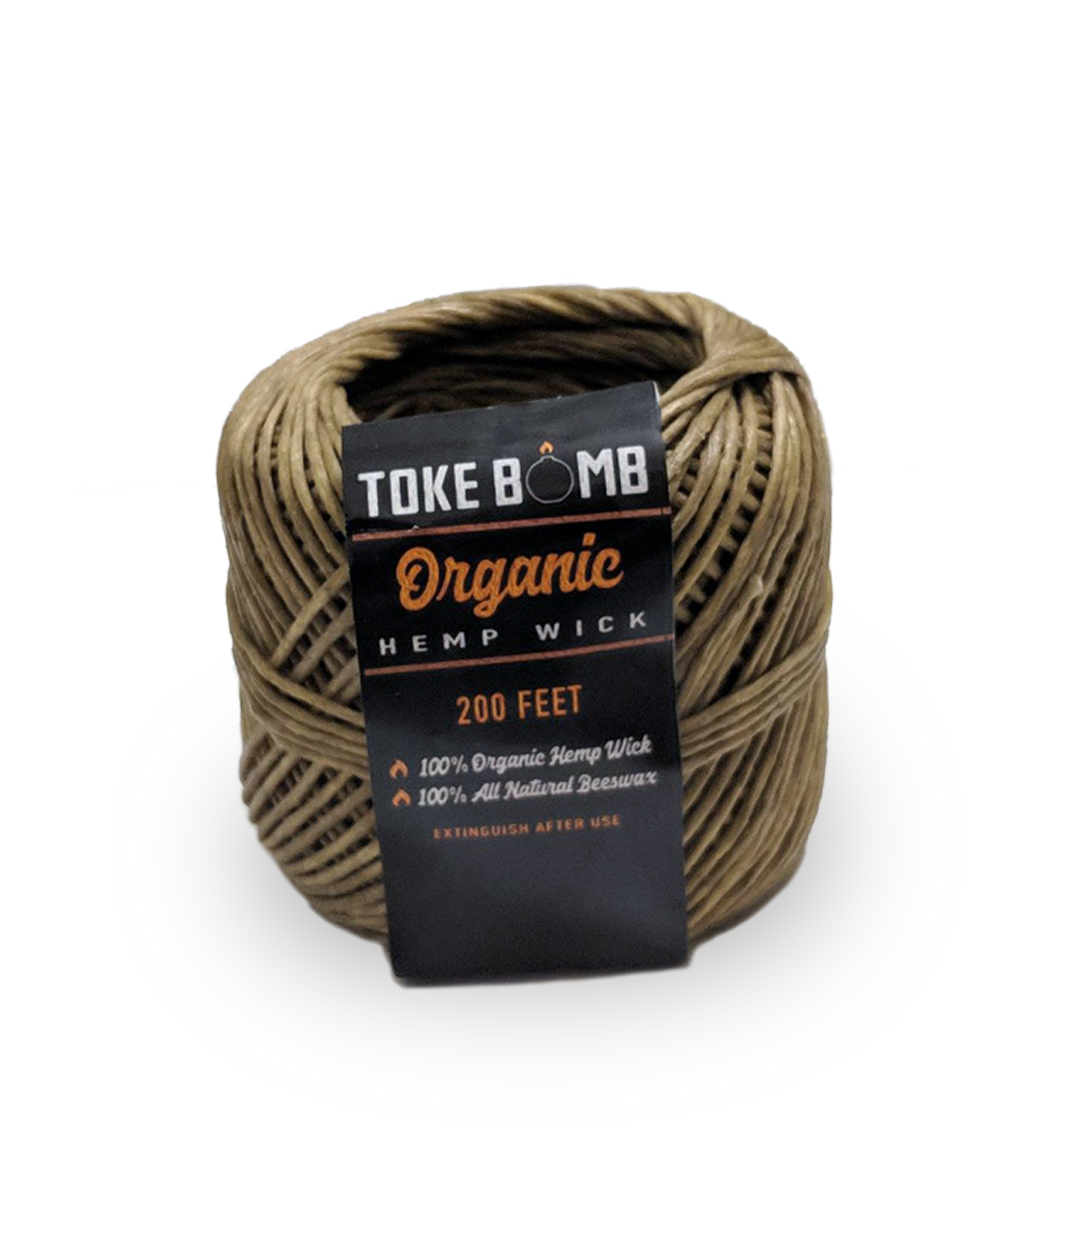 1 Roll of 200 ft Hemp Wick with Organic Beeswax